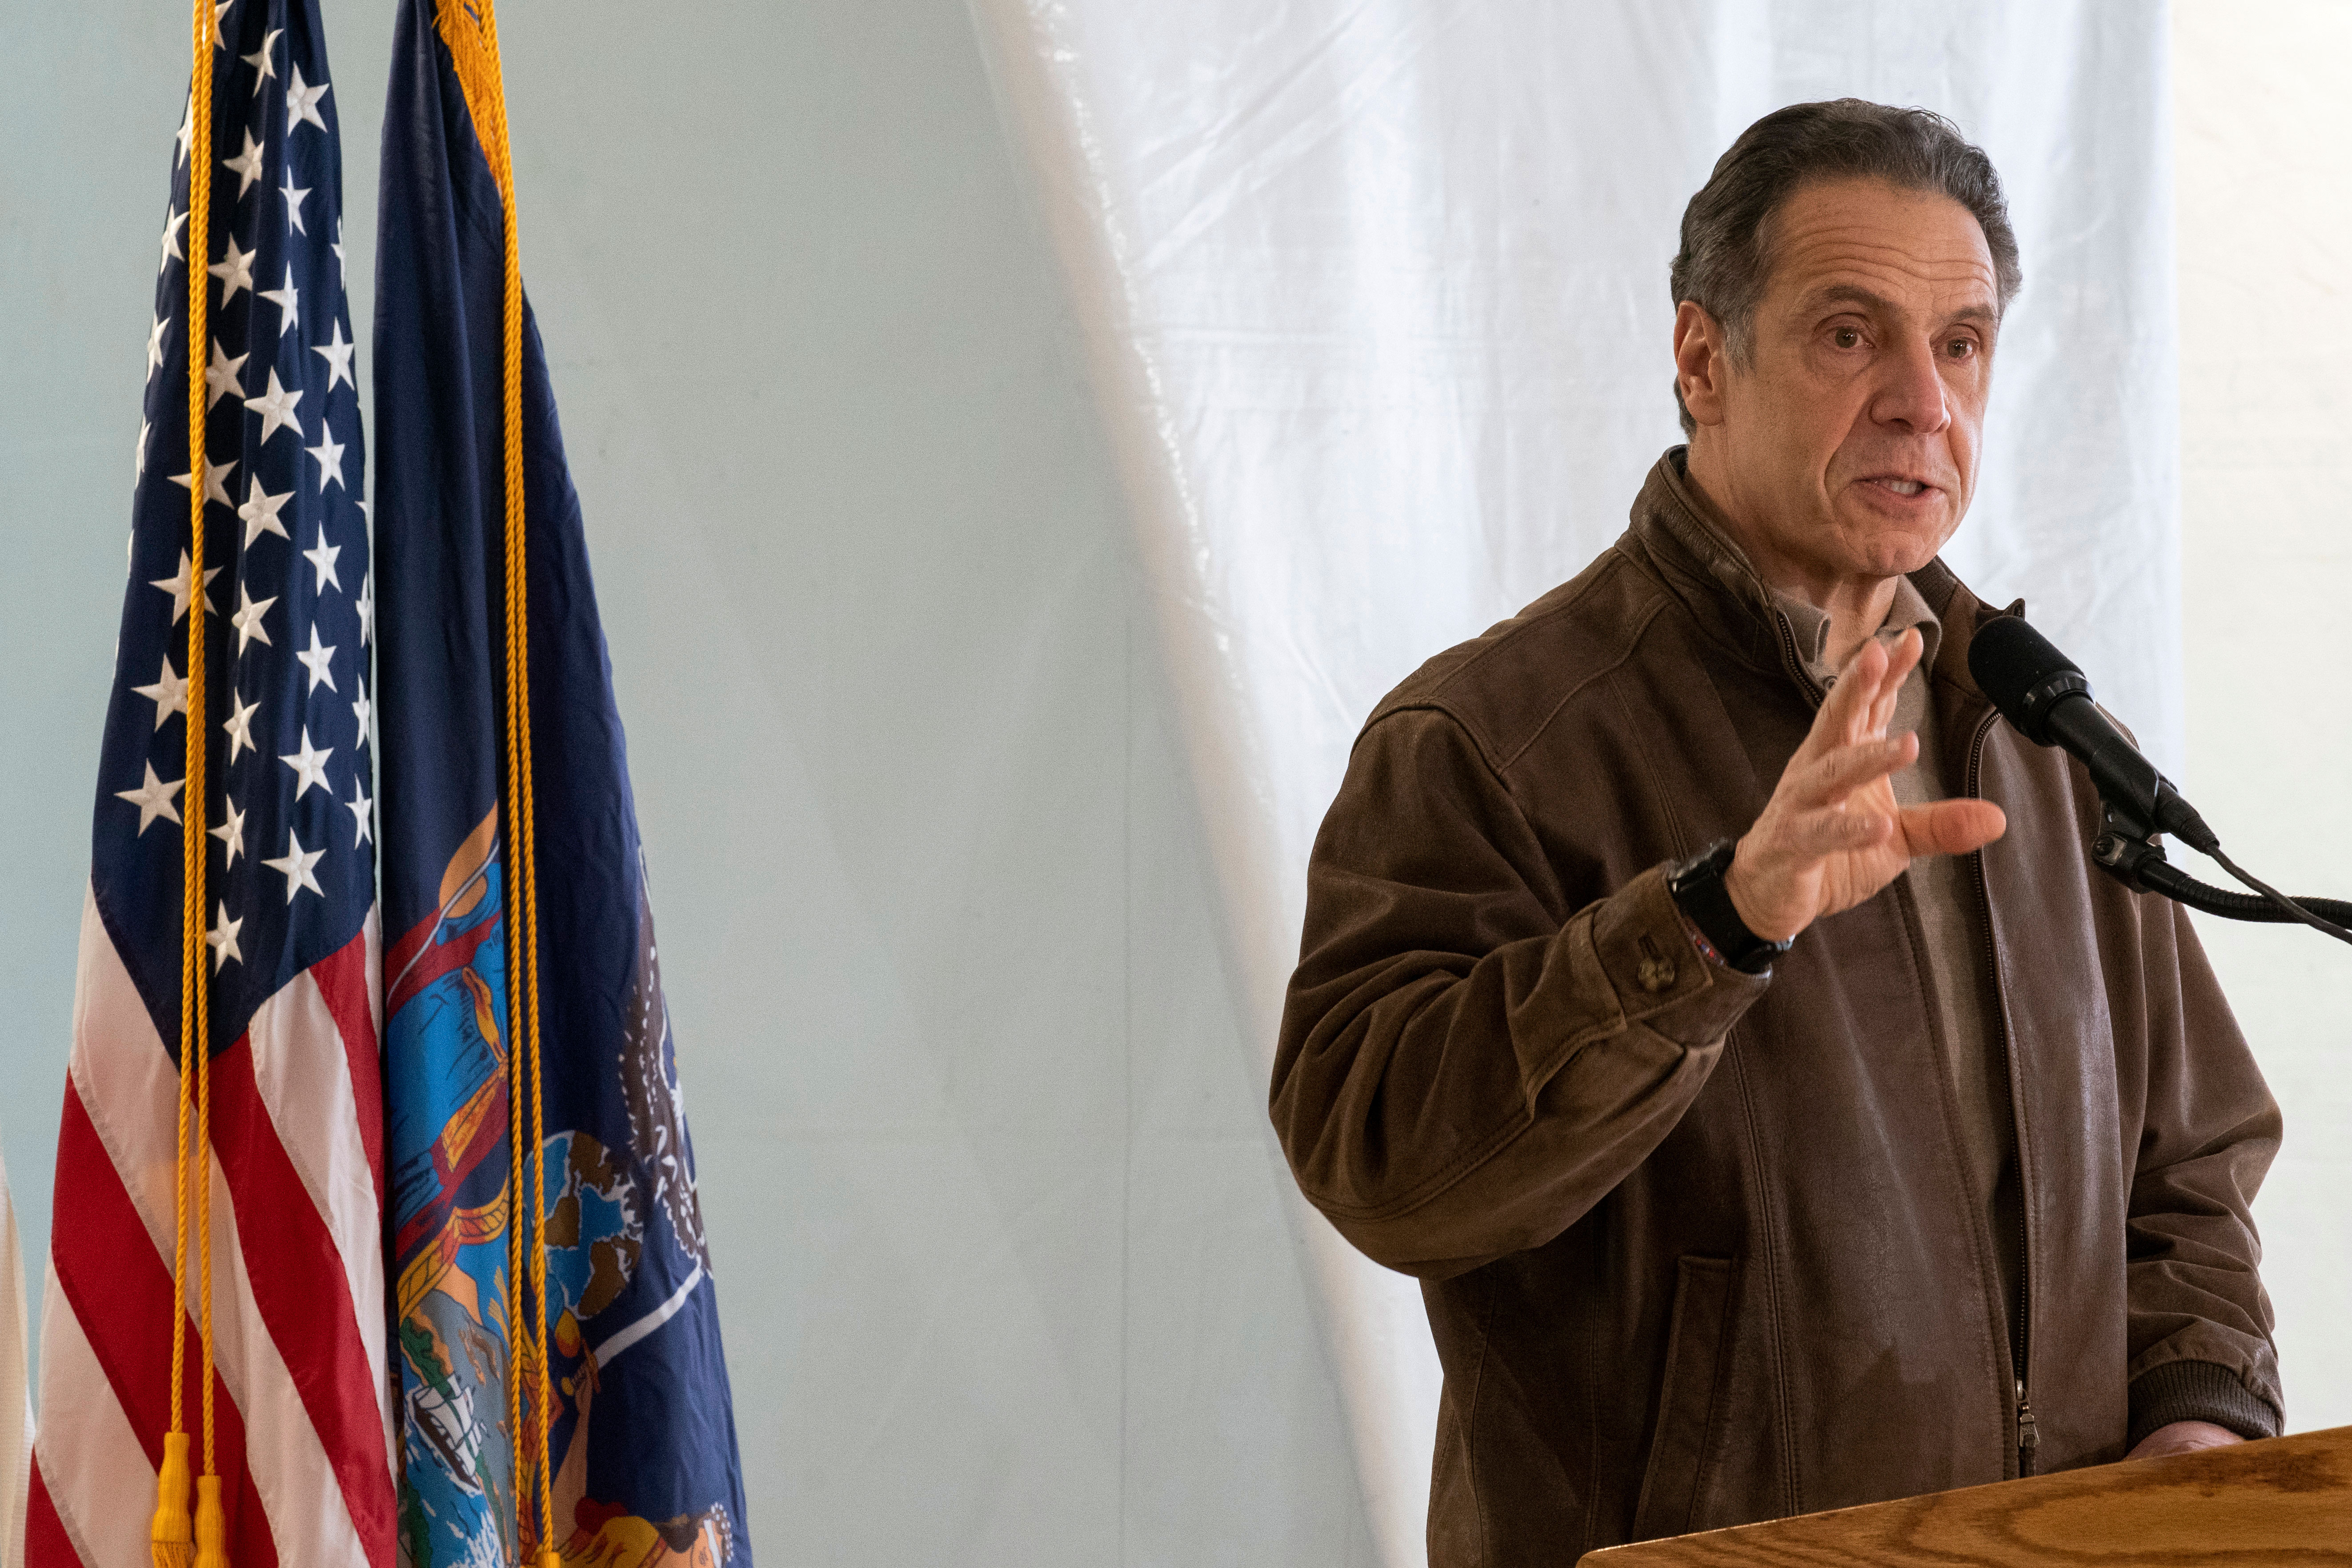 Gov. Andrew Cuomo speaks during a news conference at a Covid-19 pop-up vaccination site at William Reid Apartments in Brooklyn, New York, on January 23.